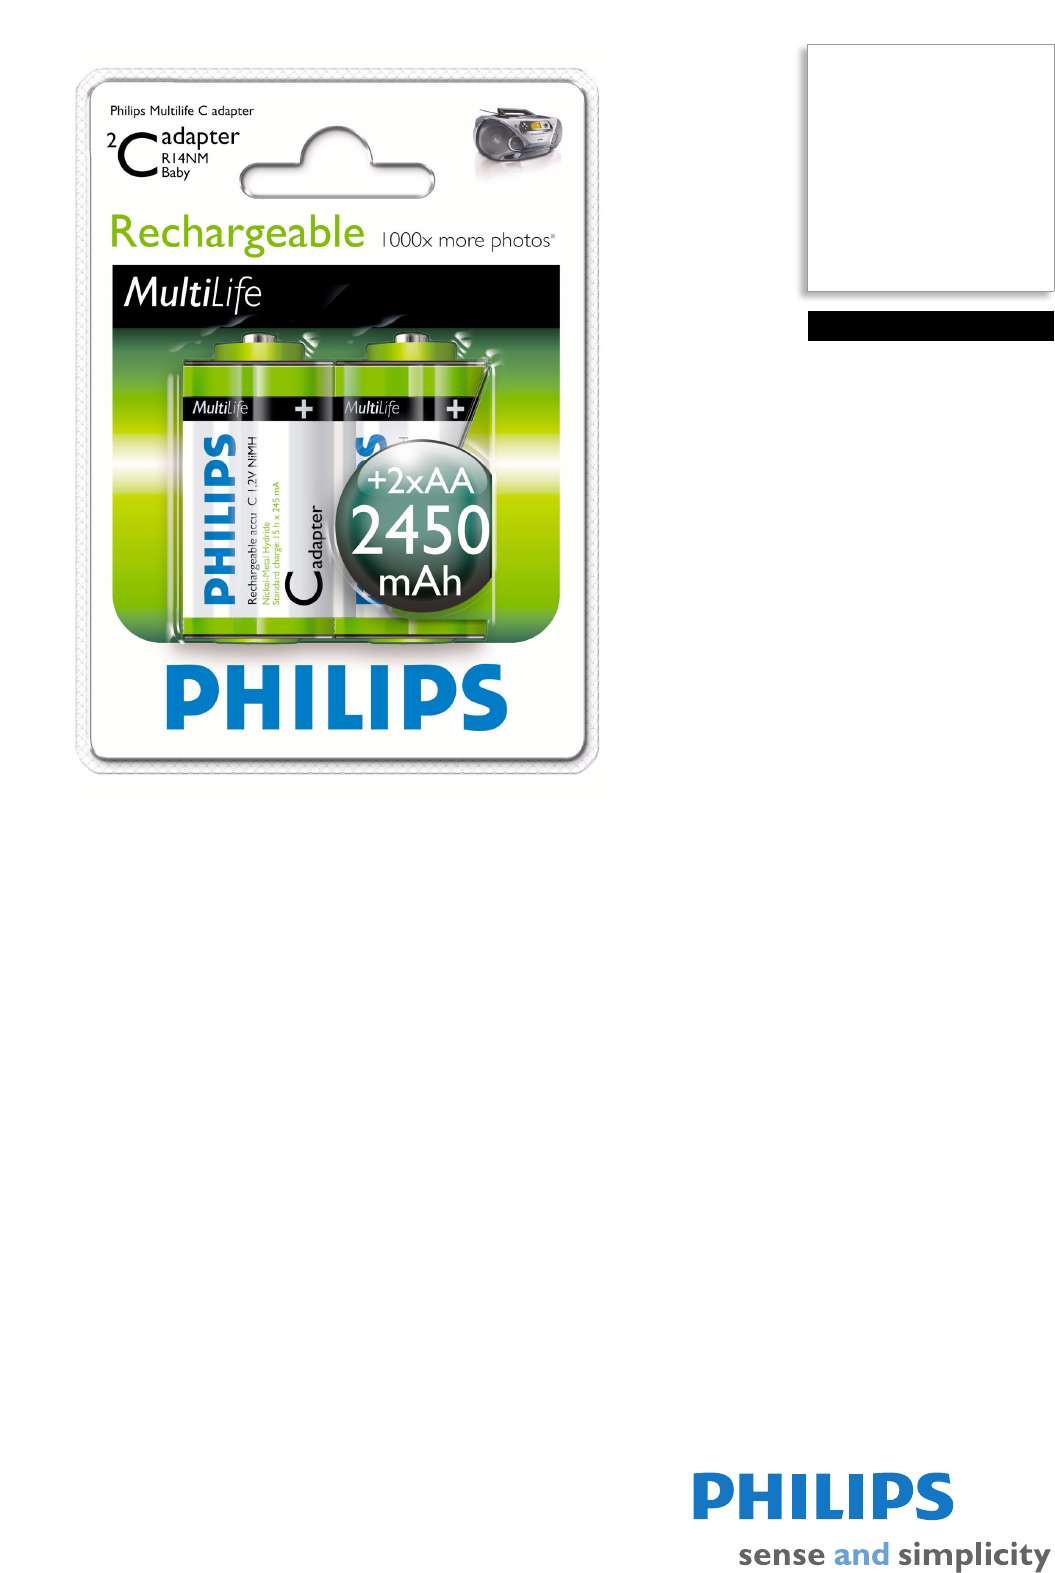 philips camera accessories r14b2a245 27 user guide manualsonline com rh camera manualsonline com Philips TV Manual Philips Electronics Manuals